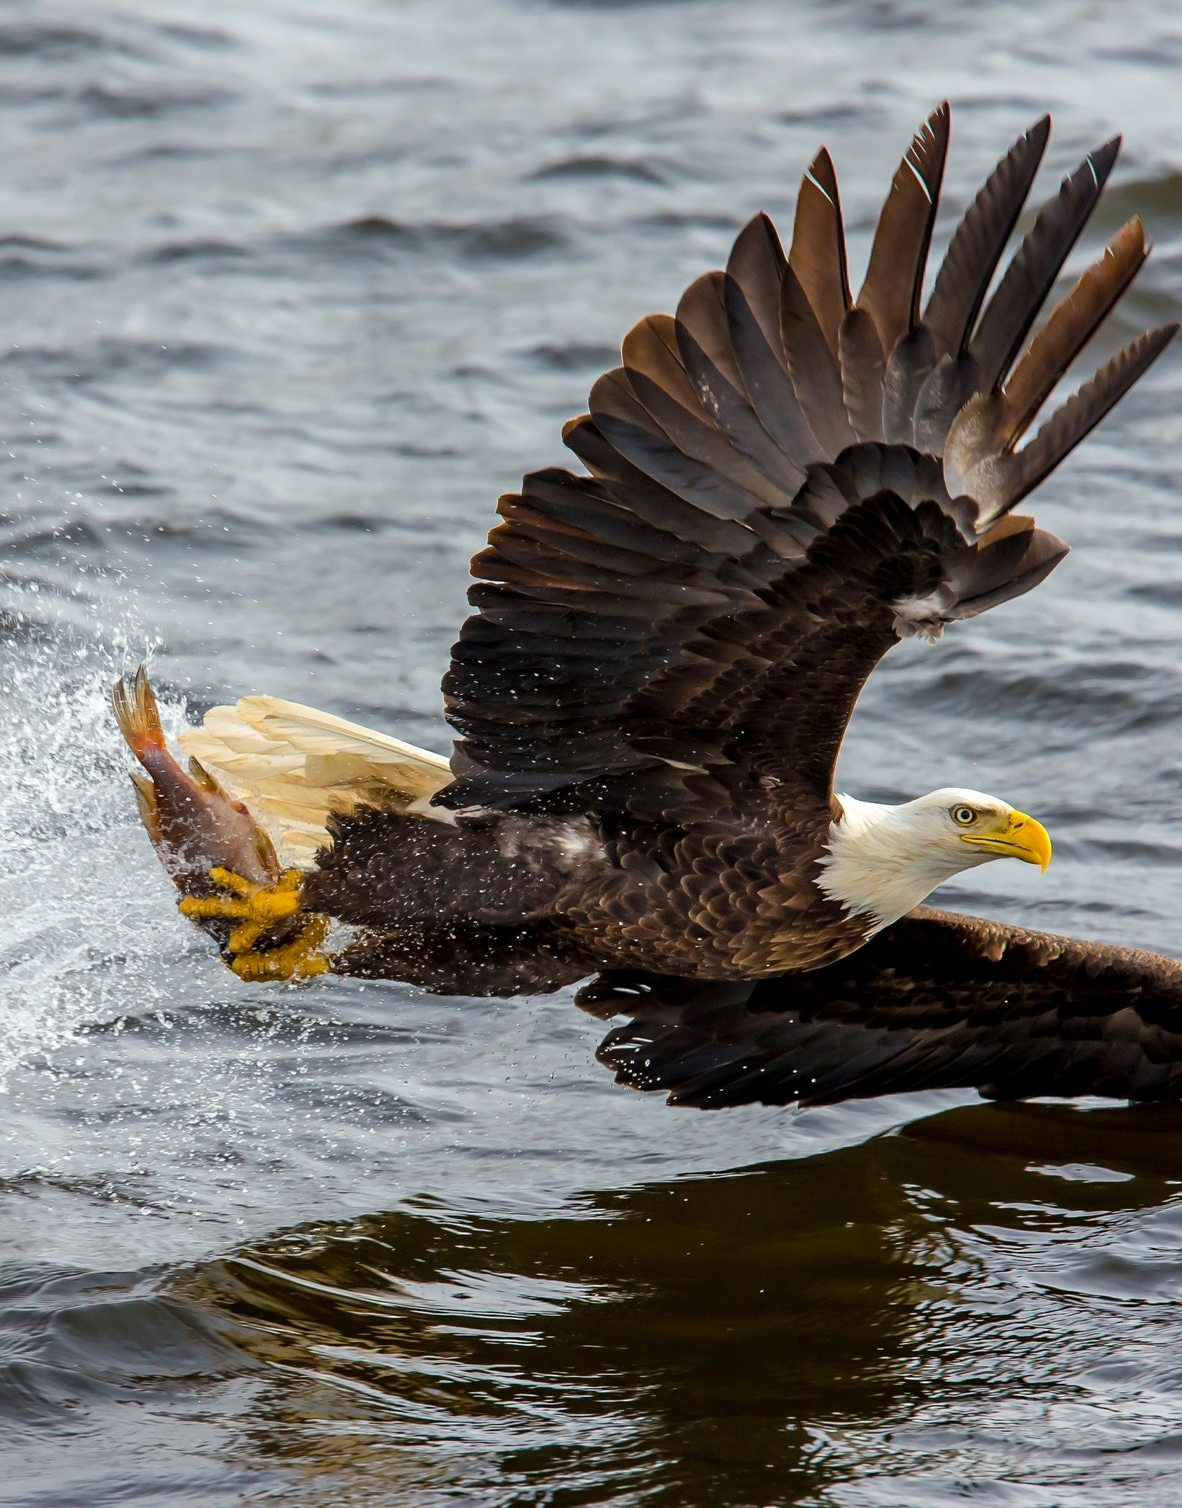 A bald eagle fishing.